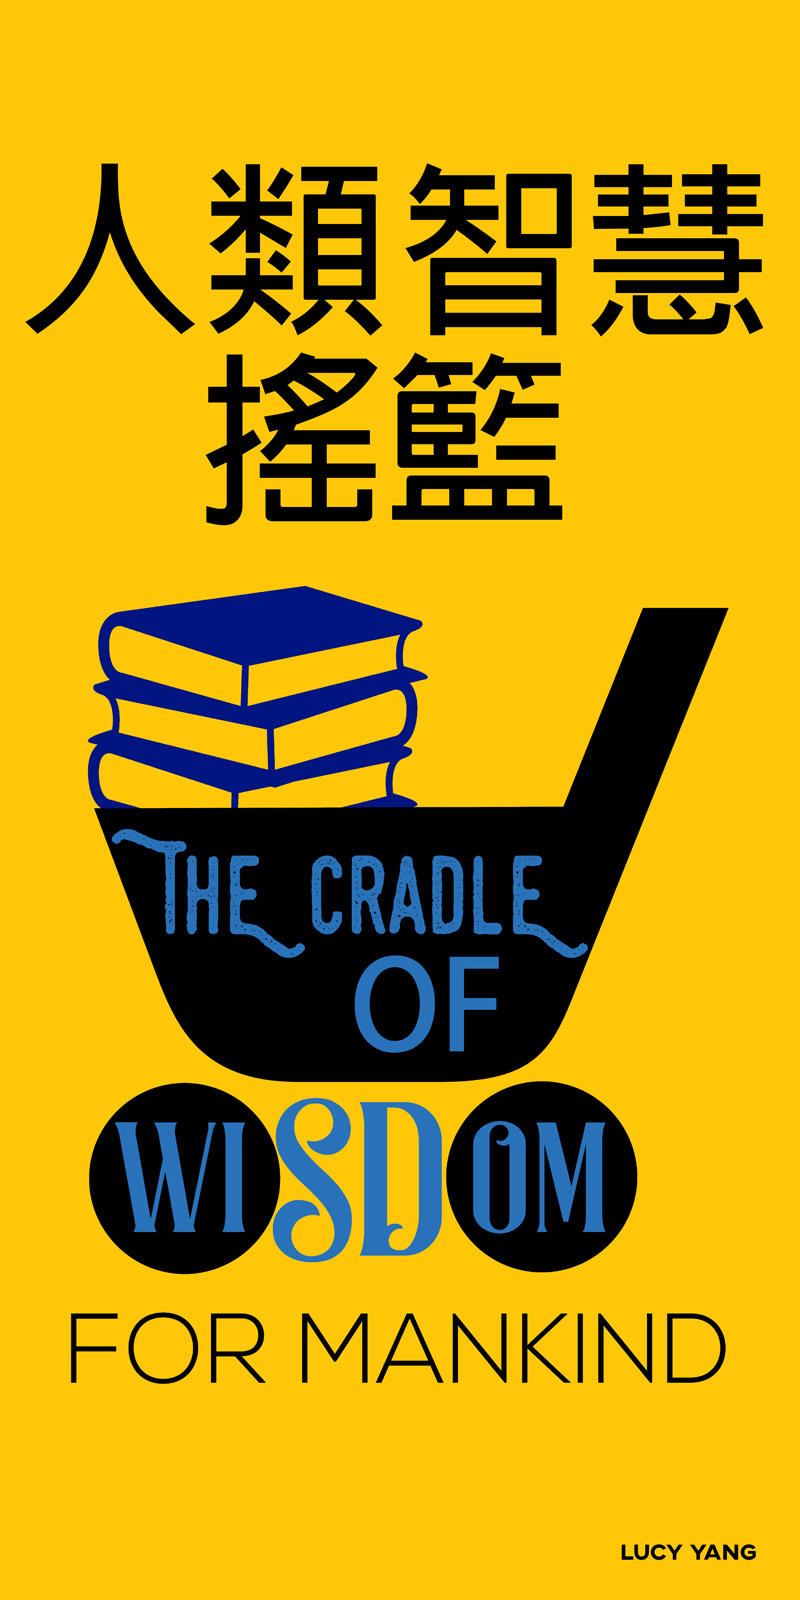 The cradle of wisdom for mankind.